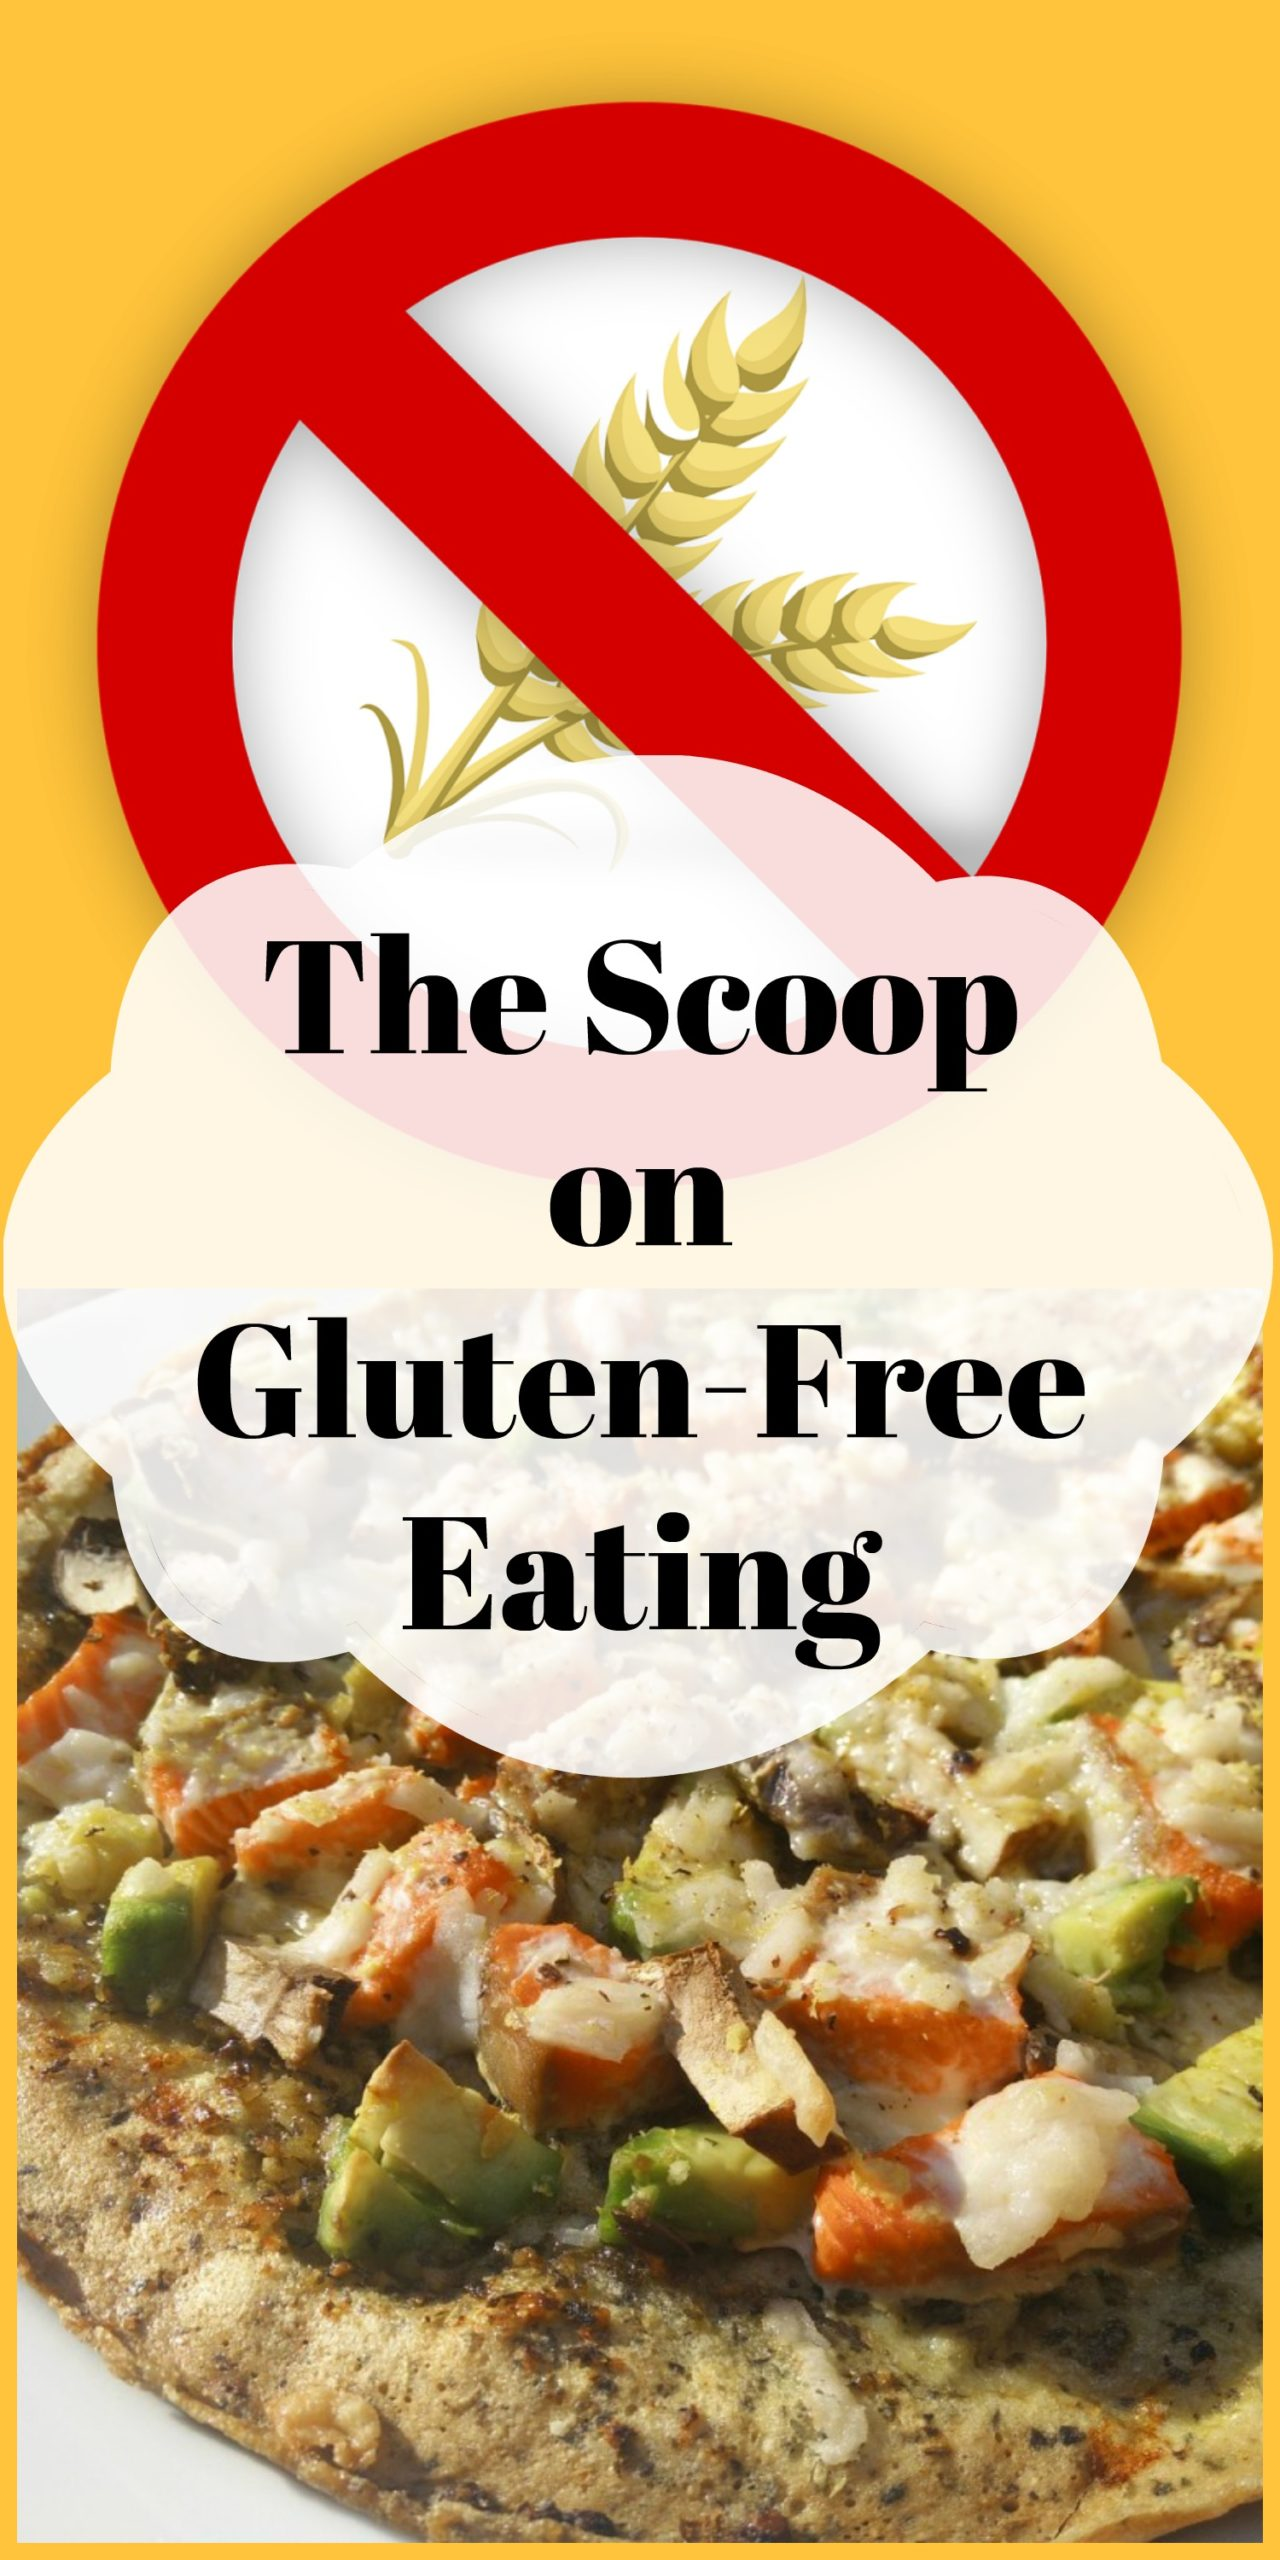 The scoop on gluten-free eating